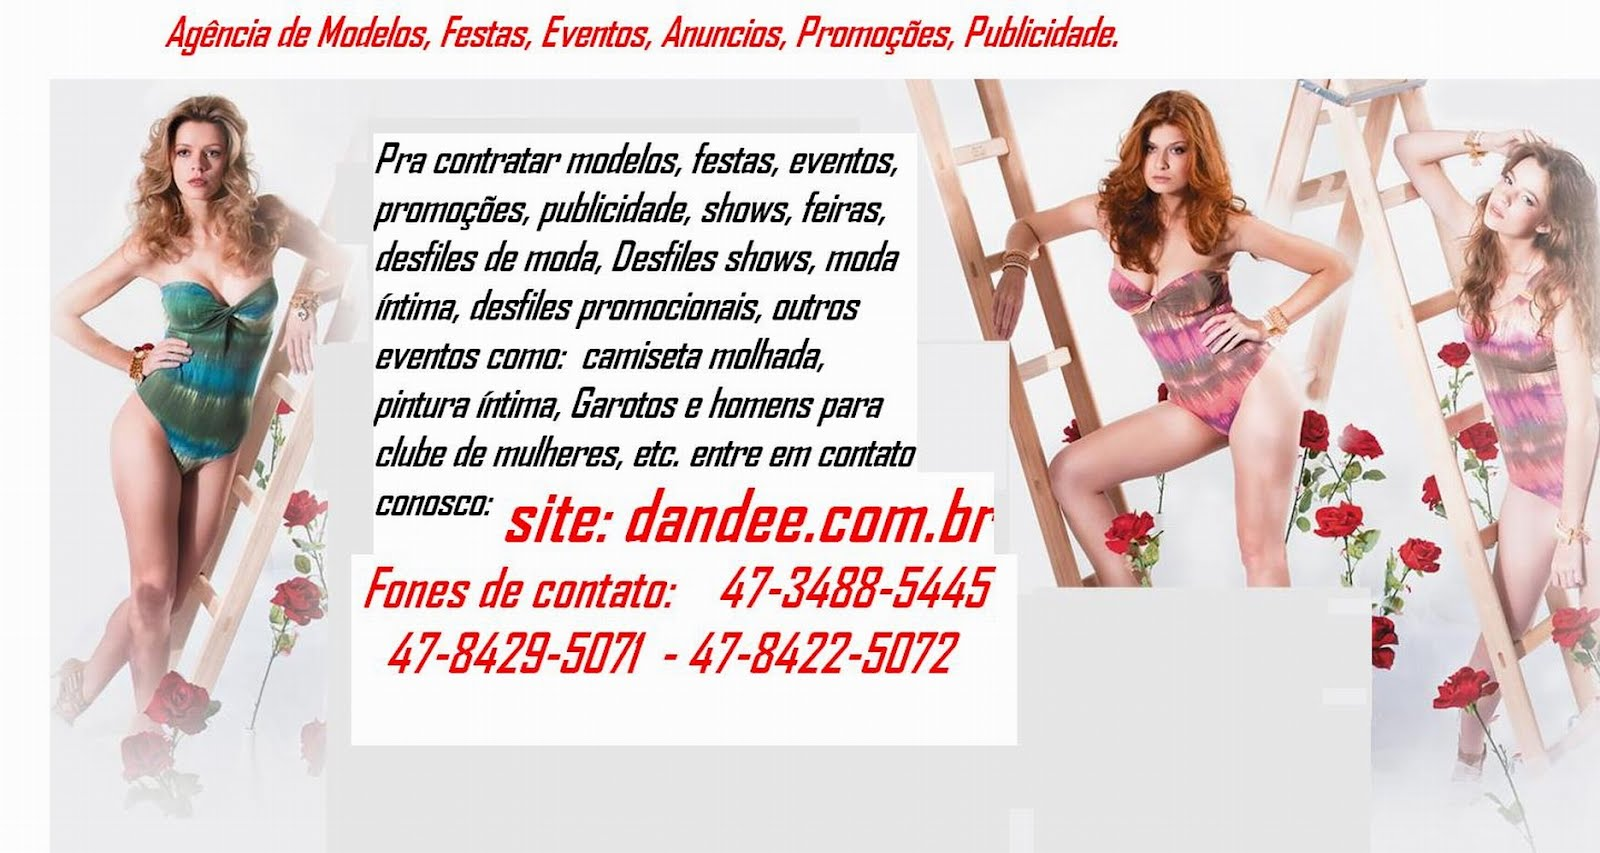 online adult dating service for middle aged skinny man Online dating is a high-w online dating advice for middle-aged singles from a man with online dating advice for middle-aged singles from a man.